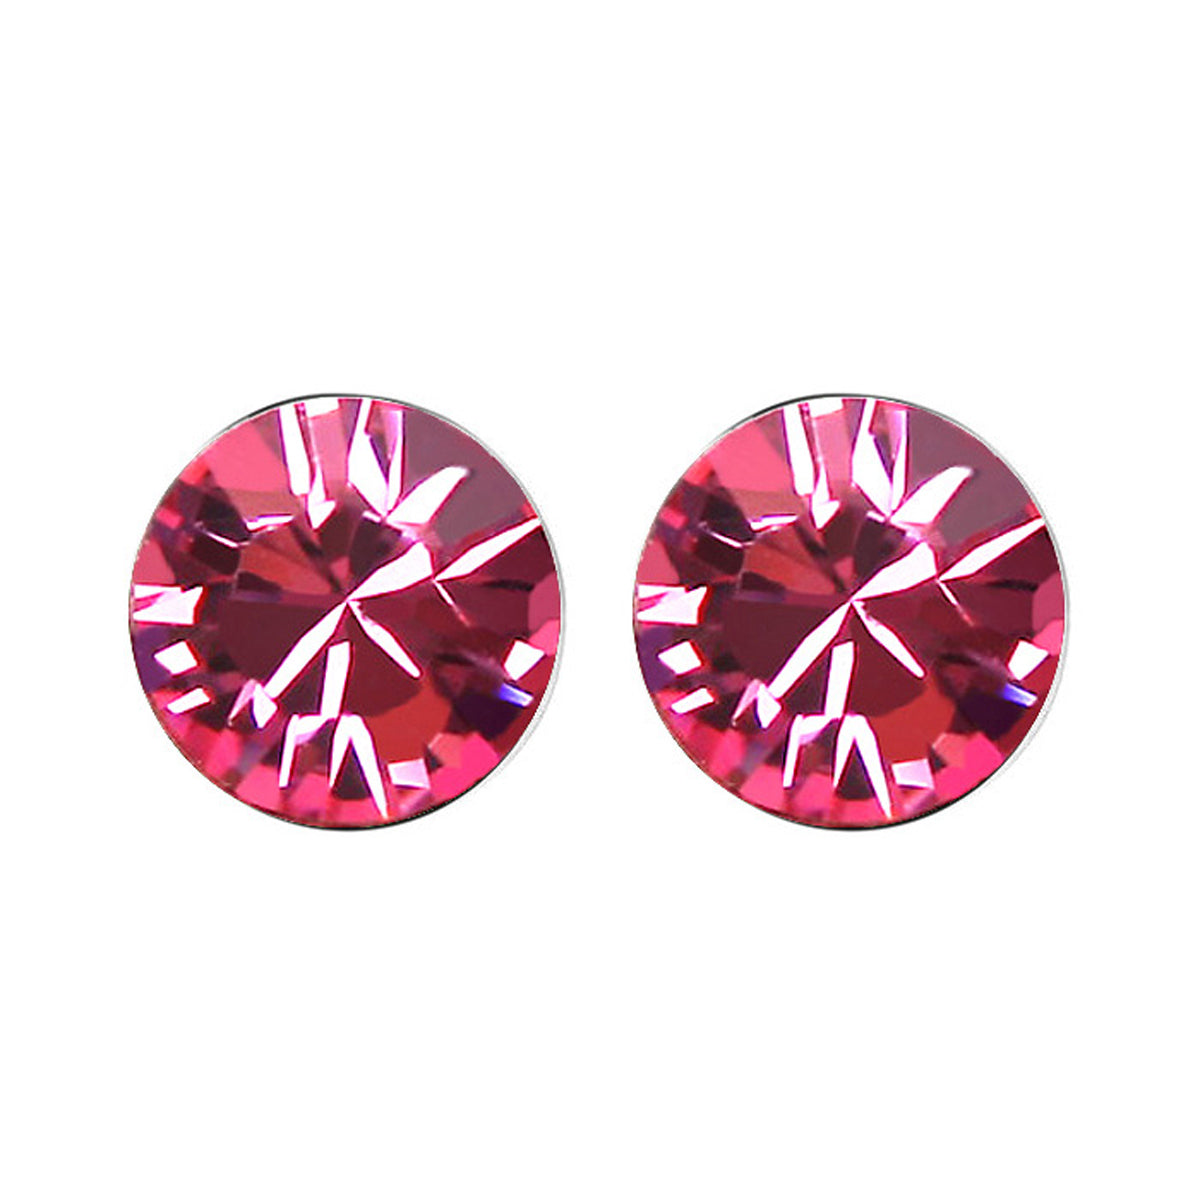 Large Rose Swarovski Elements Crystal Stud Earrings